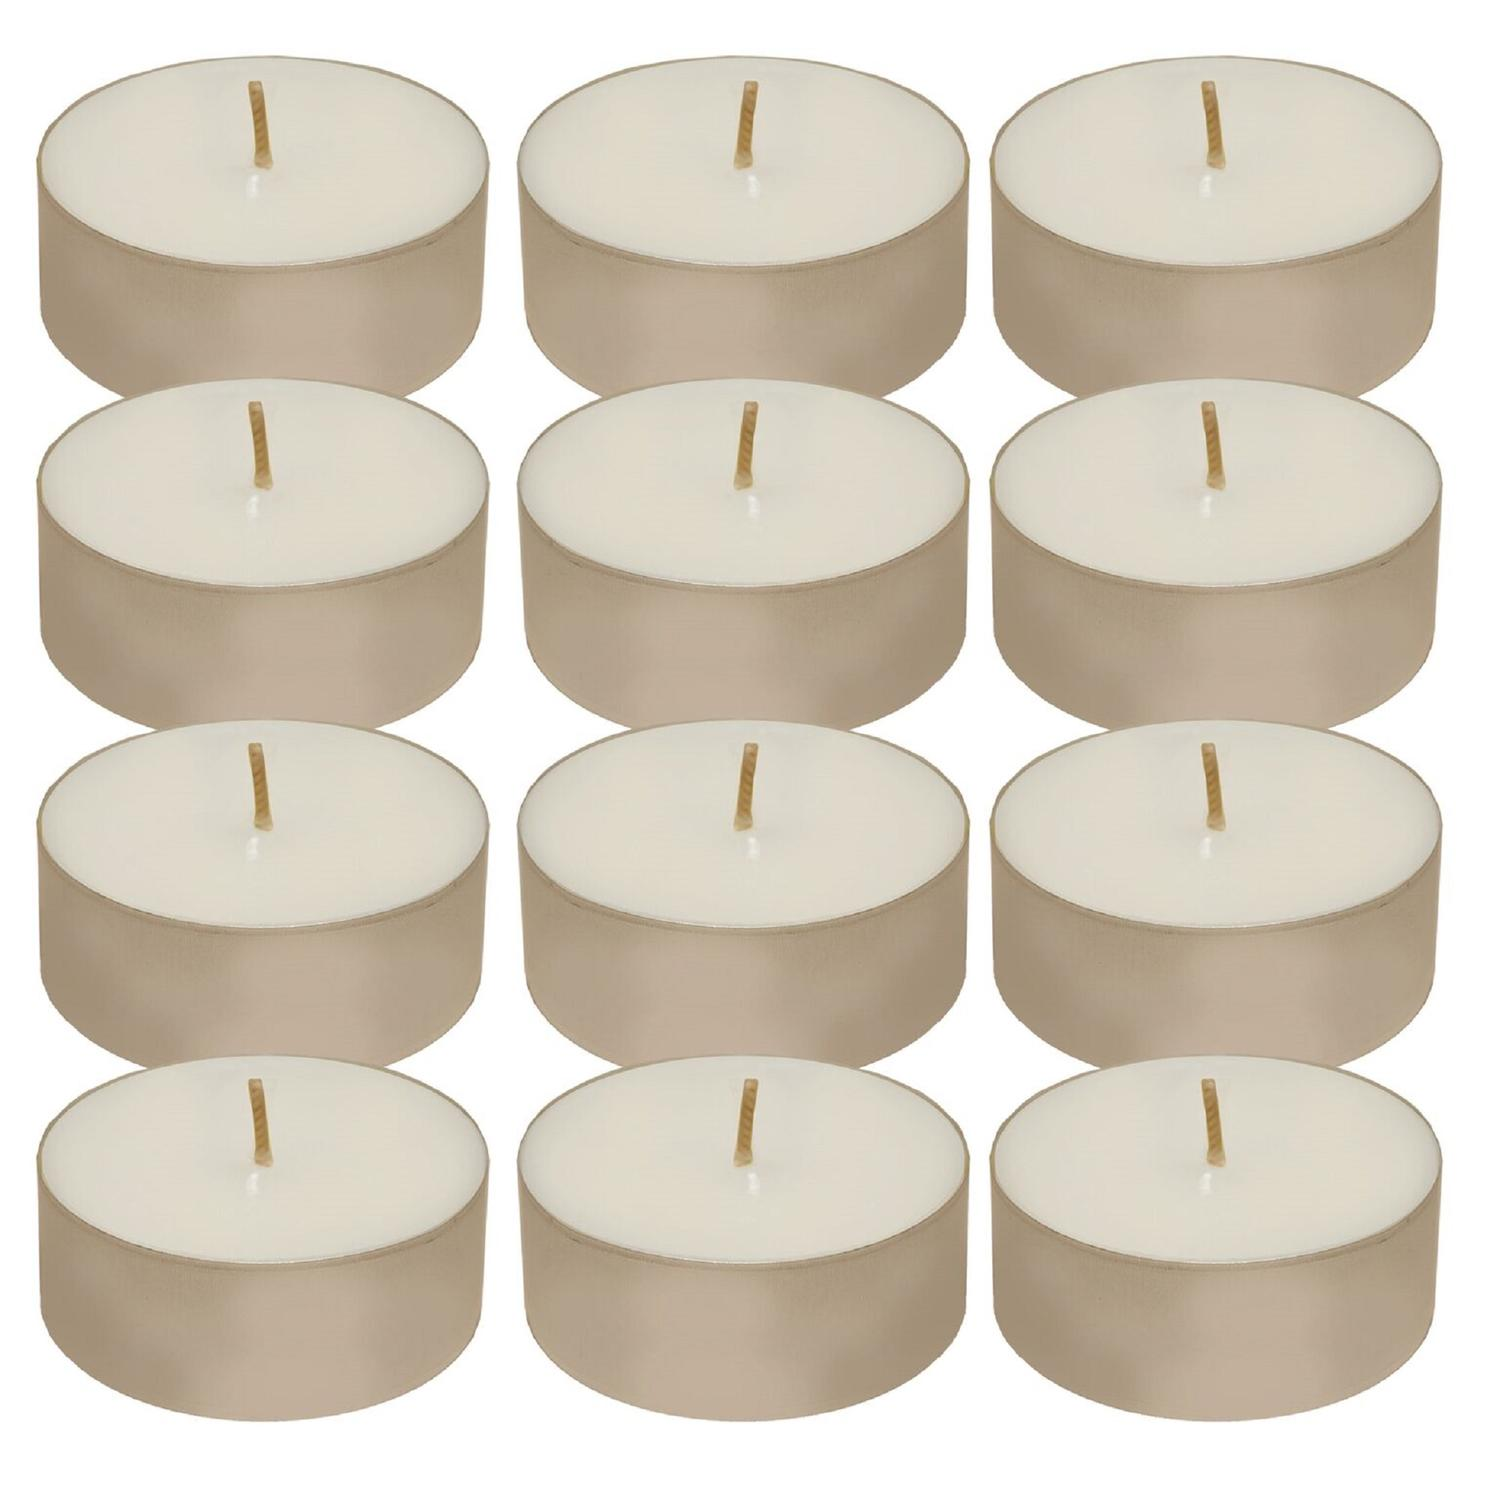 Club Pack of 12 White Wax 12hr Unscented Tea Light Candles